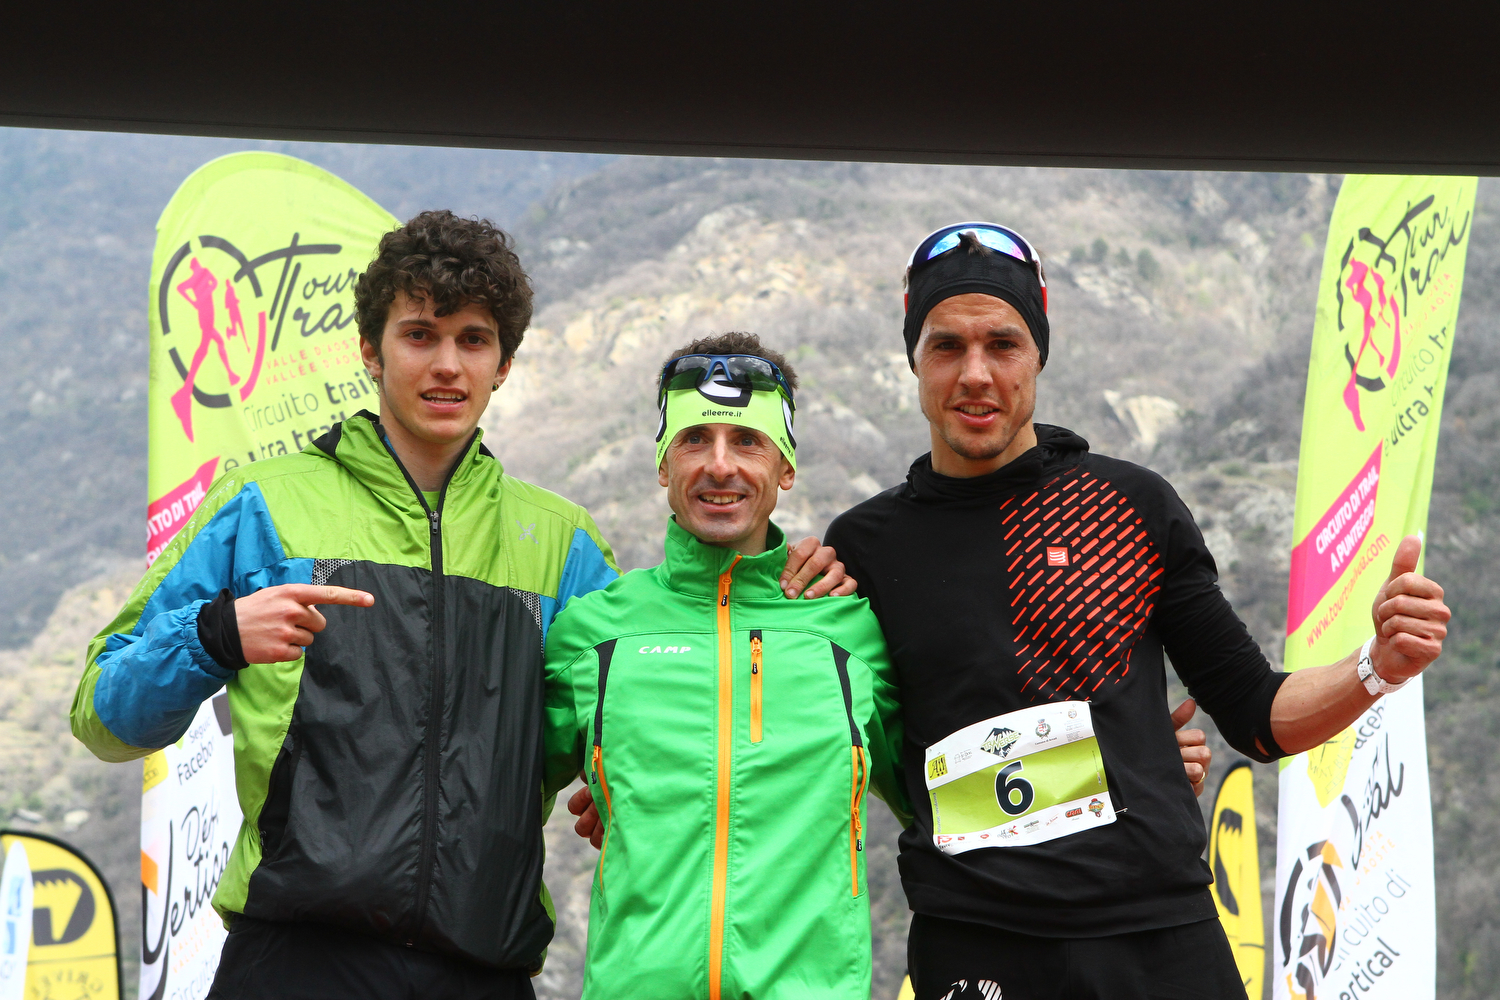 Podio maschile Traverse Trail Mathieu Brunod Dennis Brunod Michael Moulin